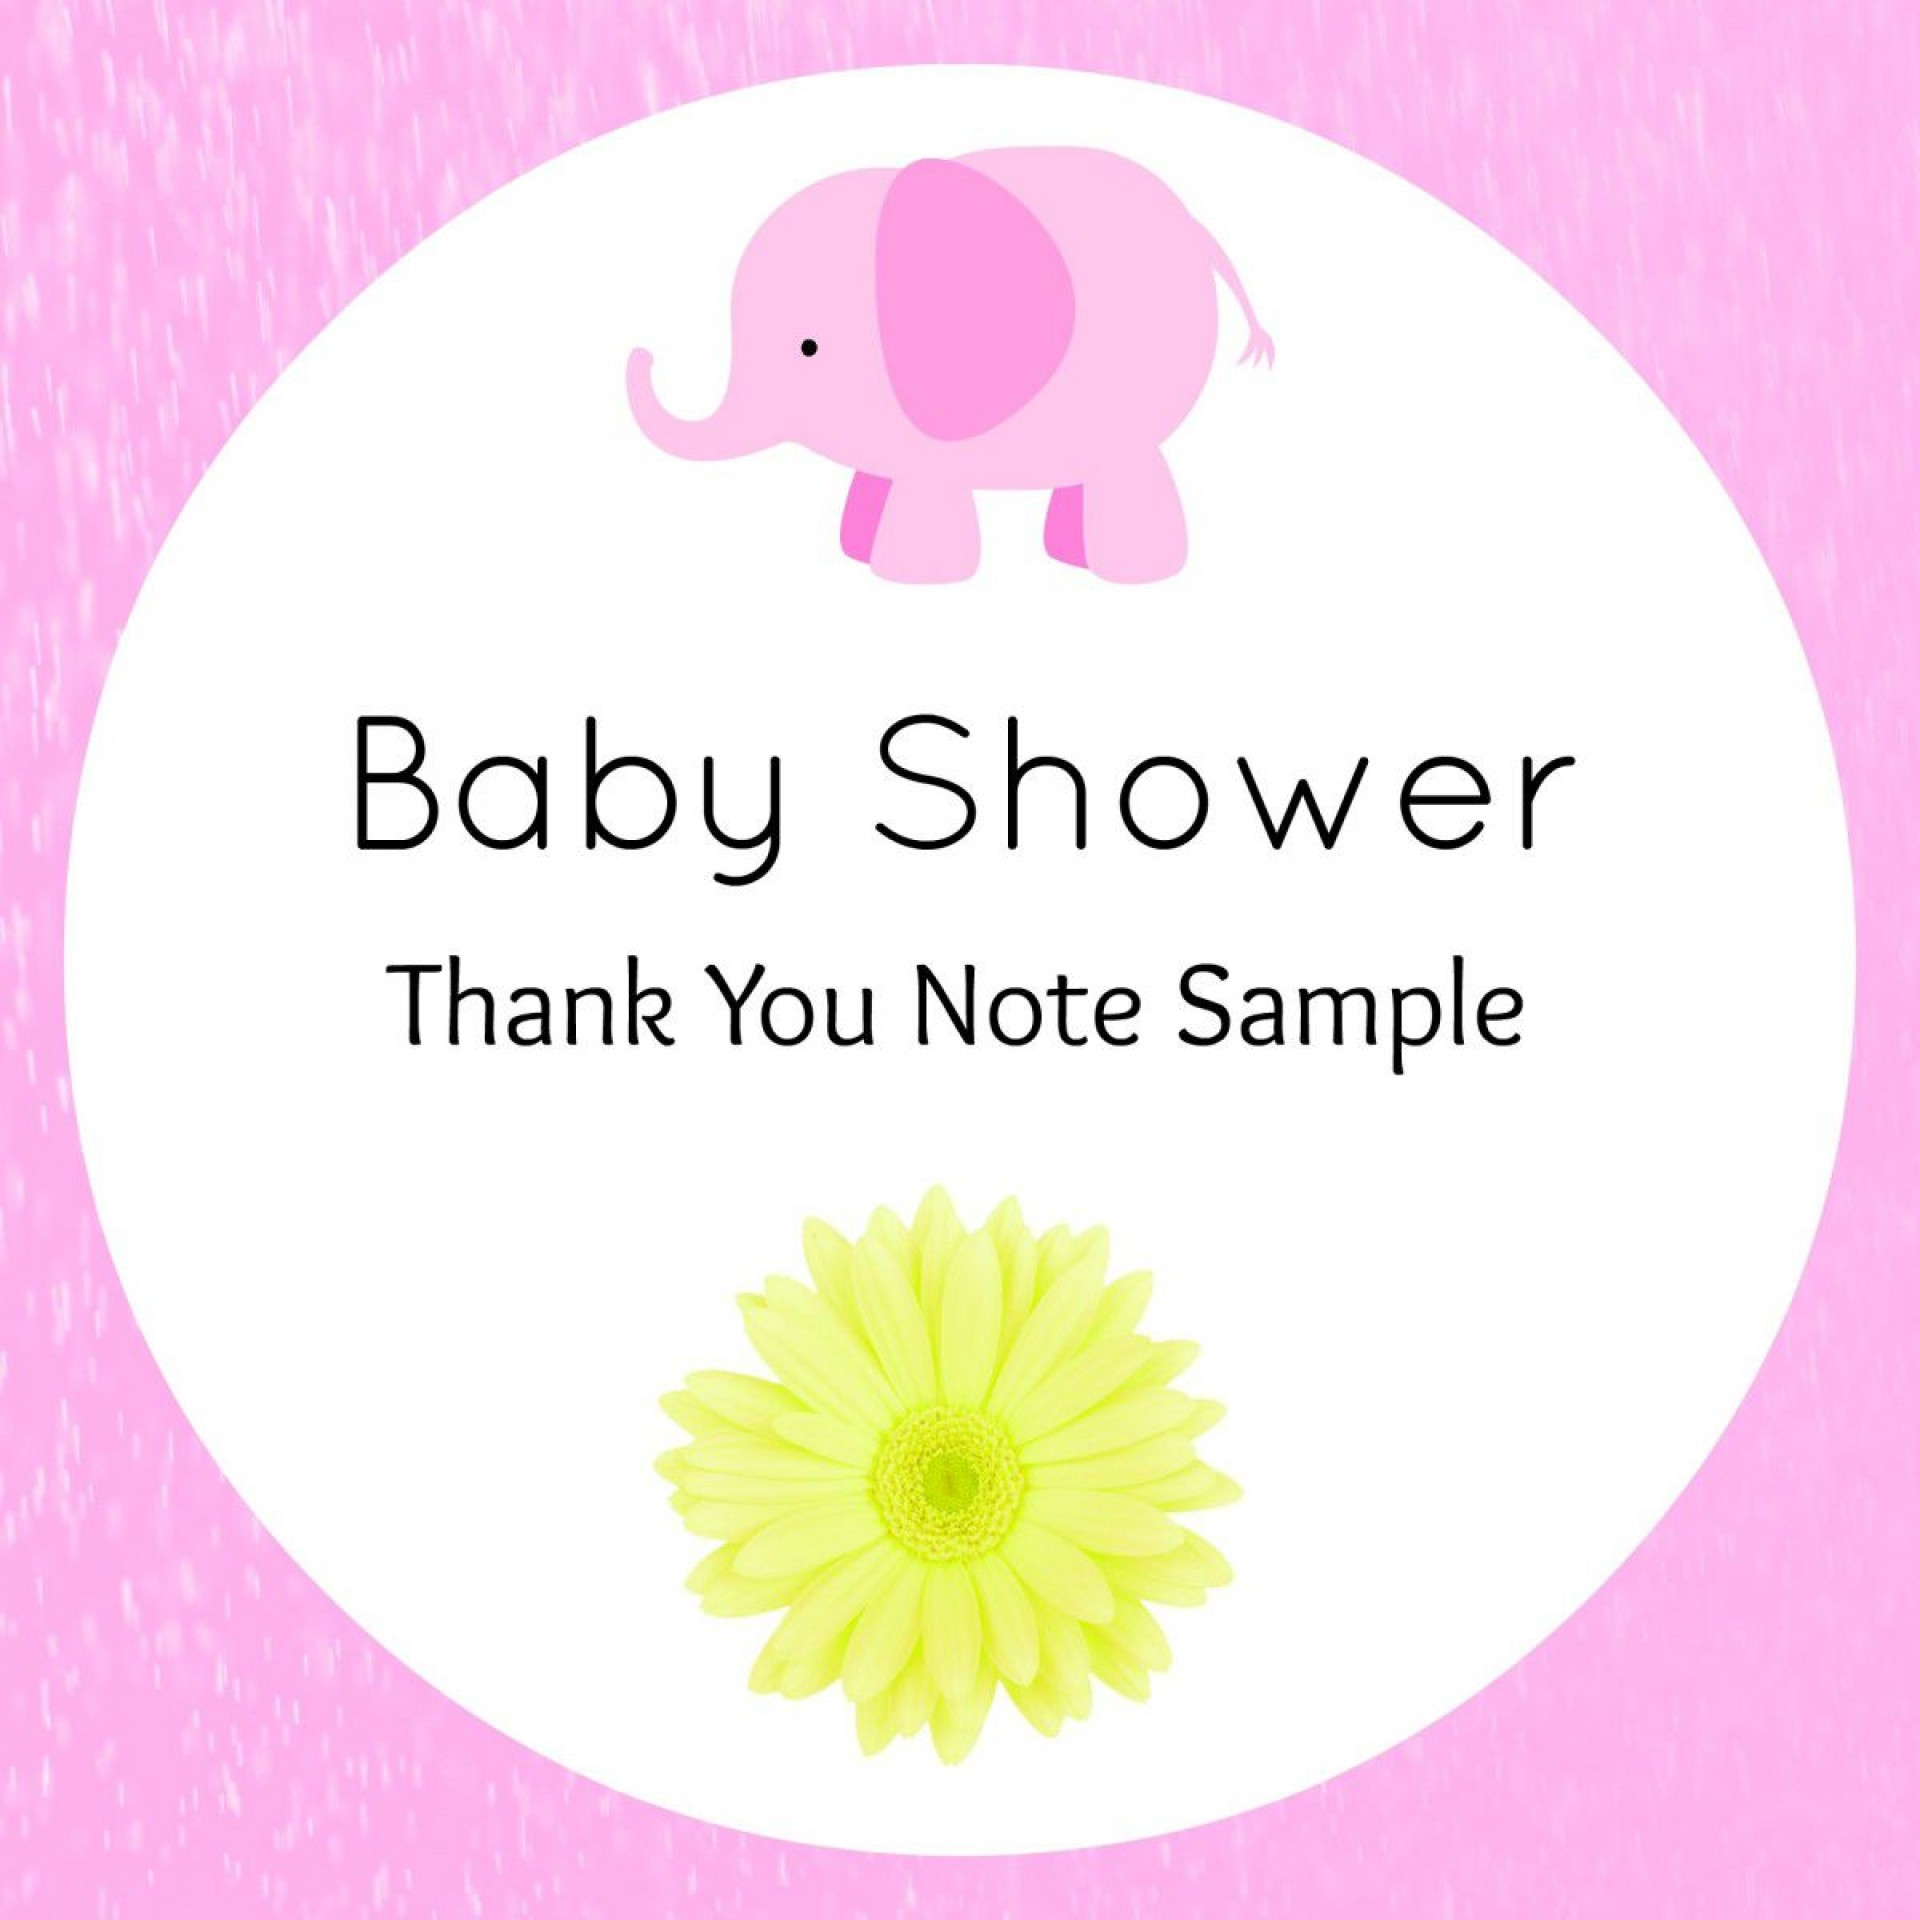 005 Sensational Thank You Note Wording Baby Shower Highest Clarity  For Hosting Card1920